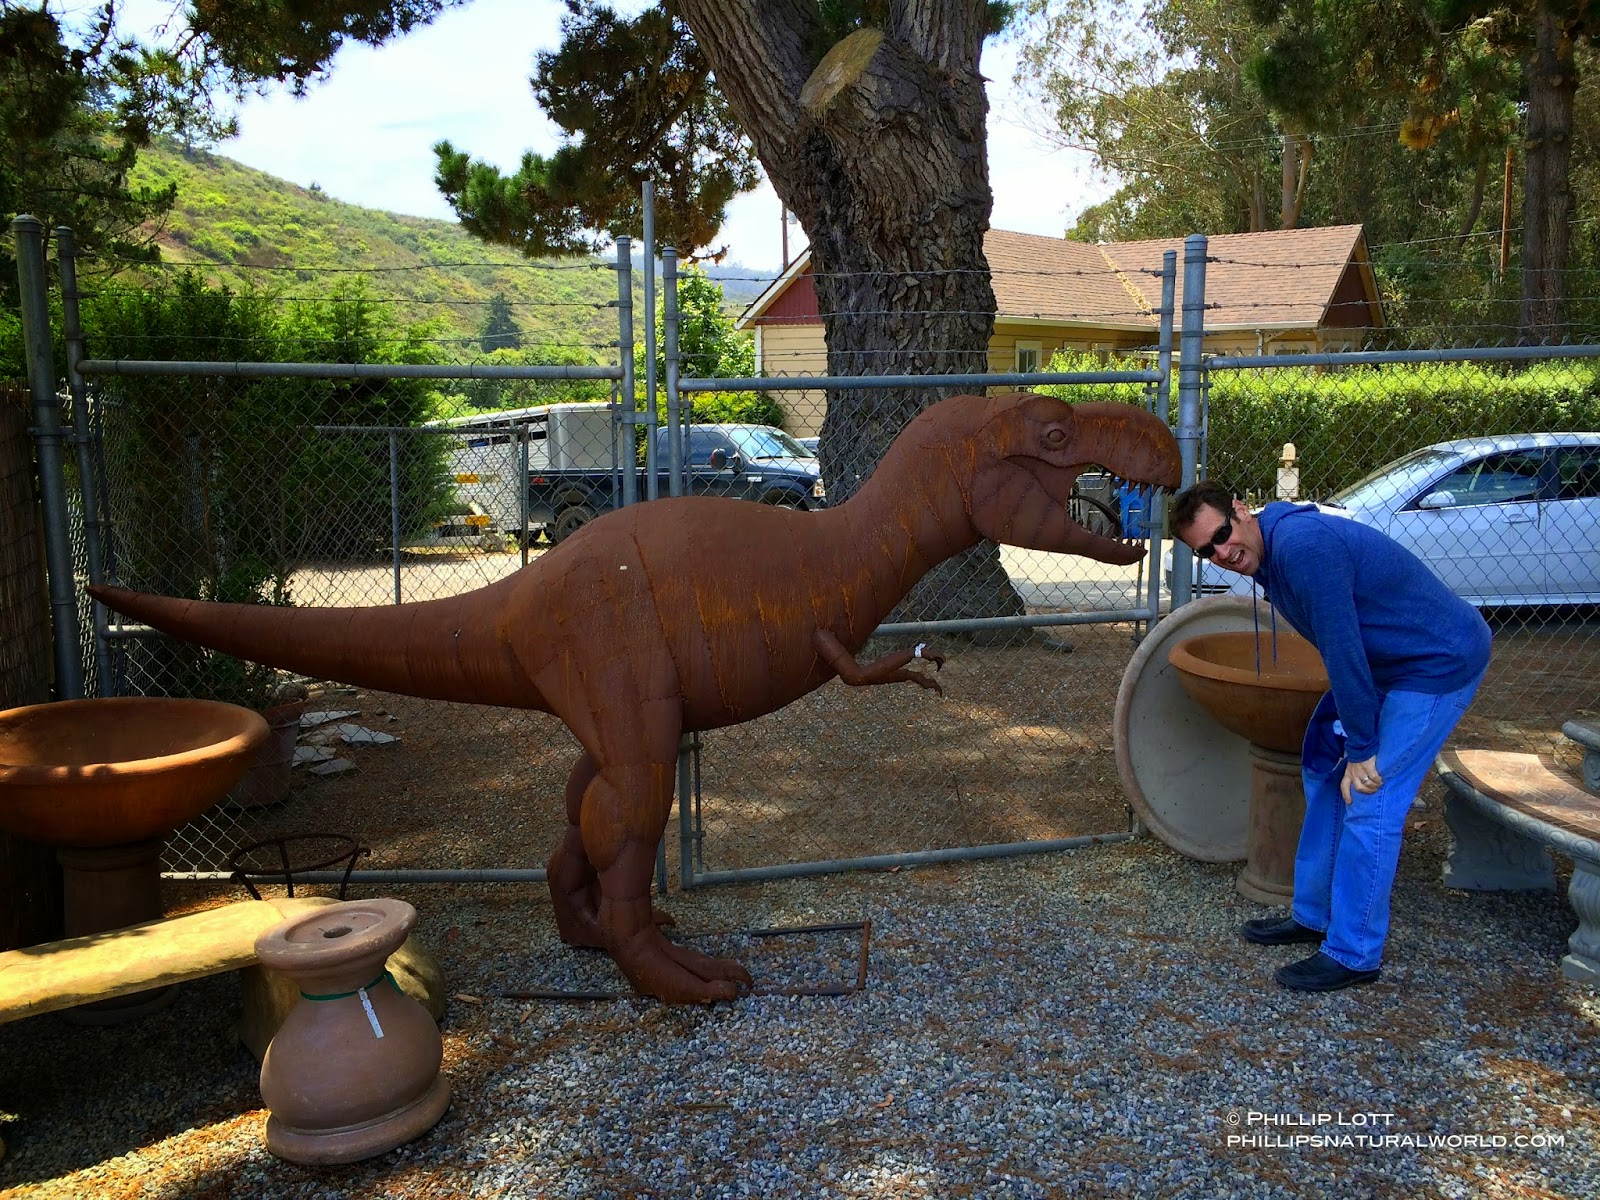 i have got to get one of these tyrannosaurus rex dinosaurs for my garden i havent figured out how to transport it from california to florida yet